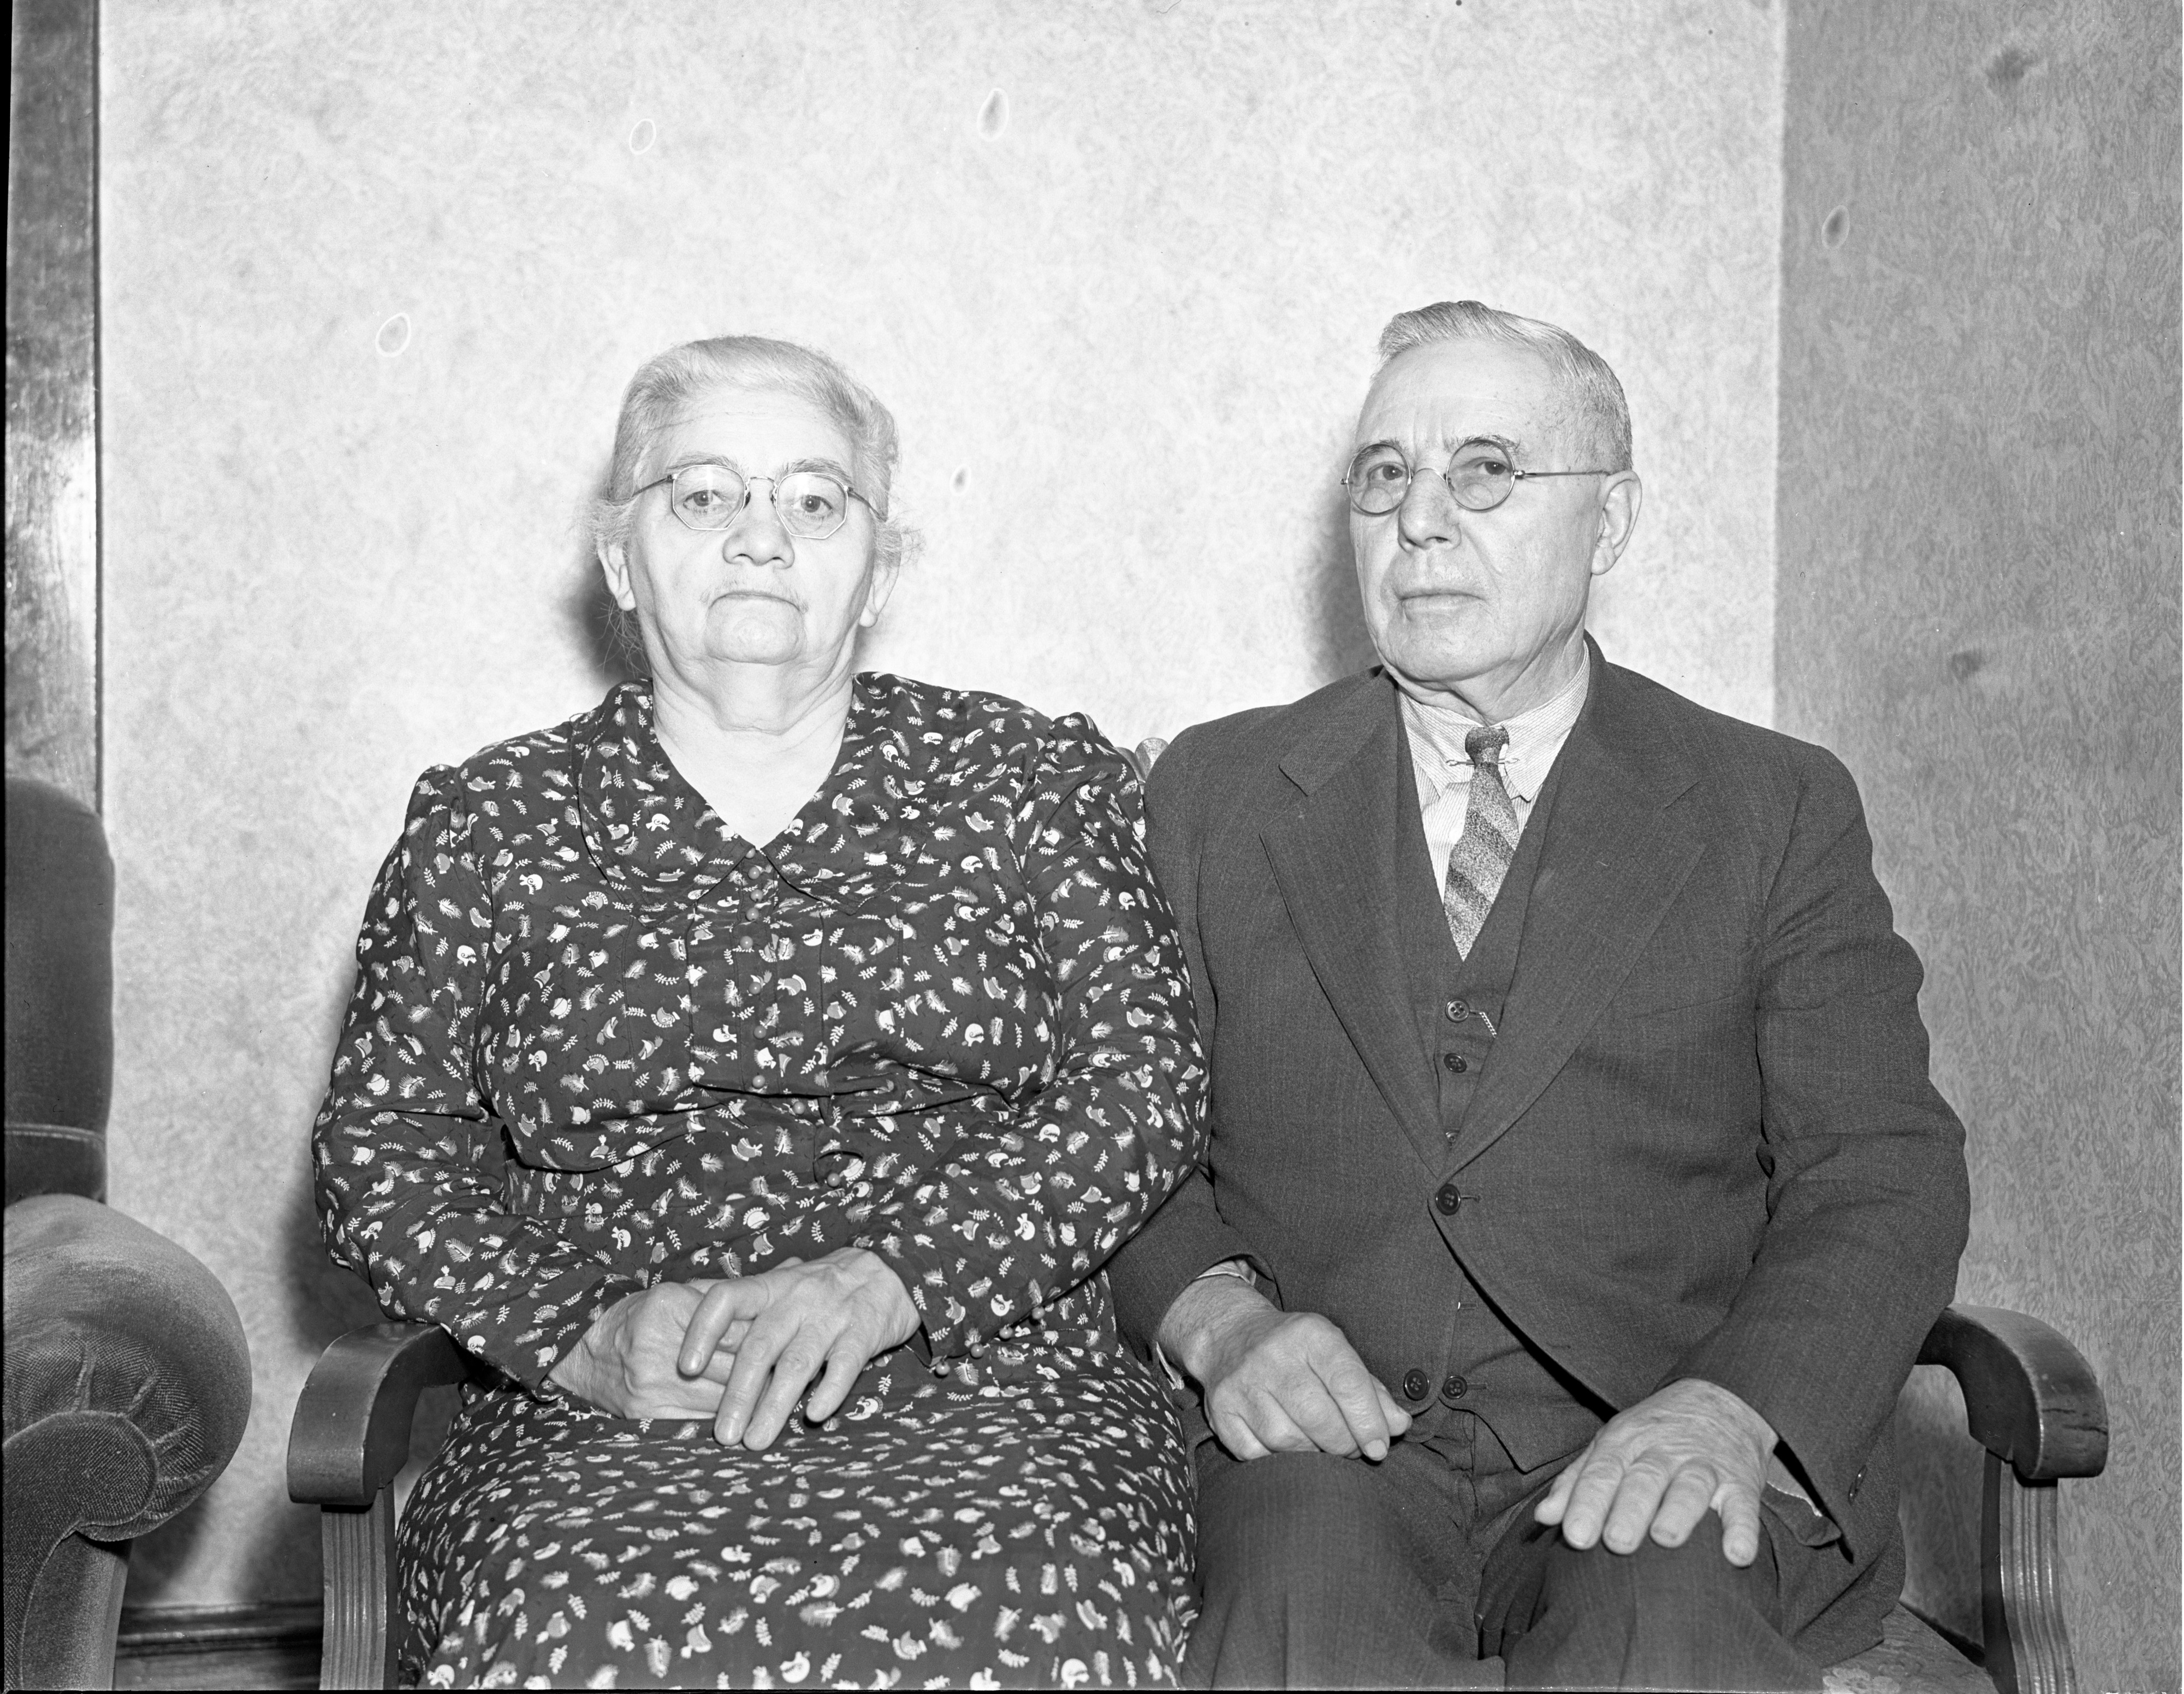 Otto & Amelia Rohn - Married 50 Years, February 1938 image